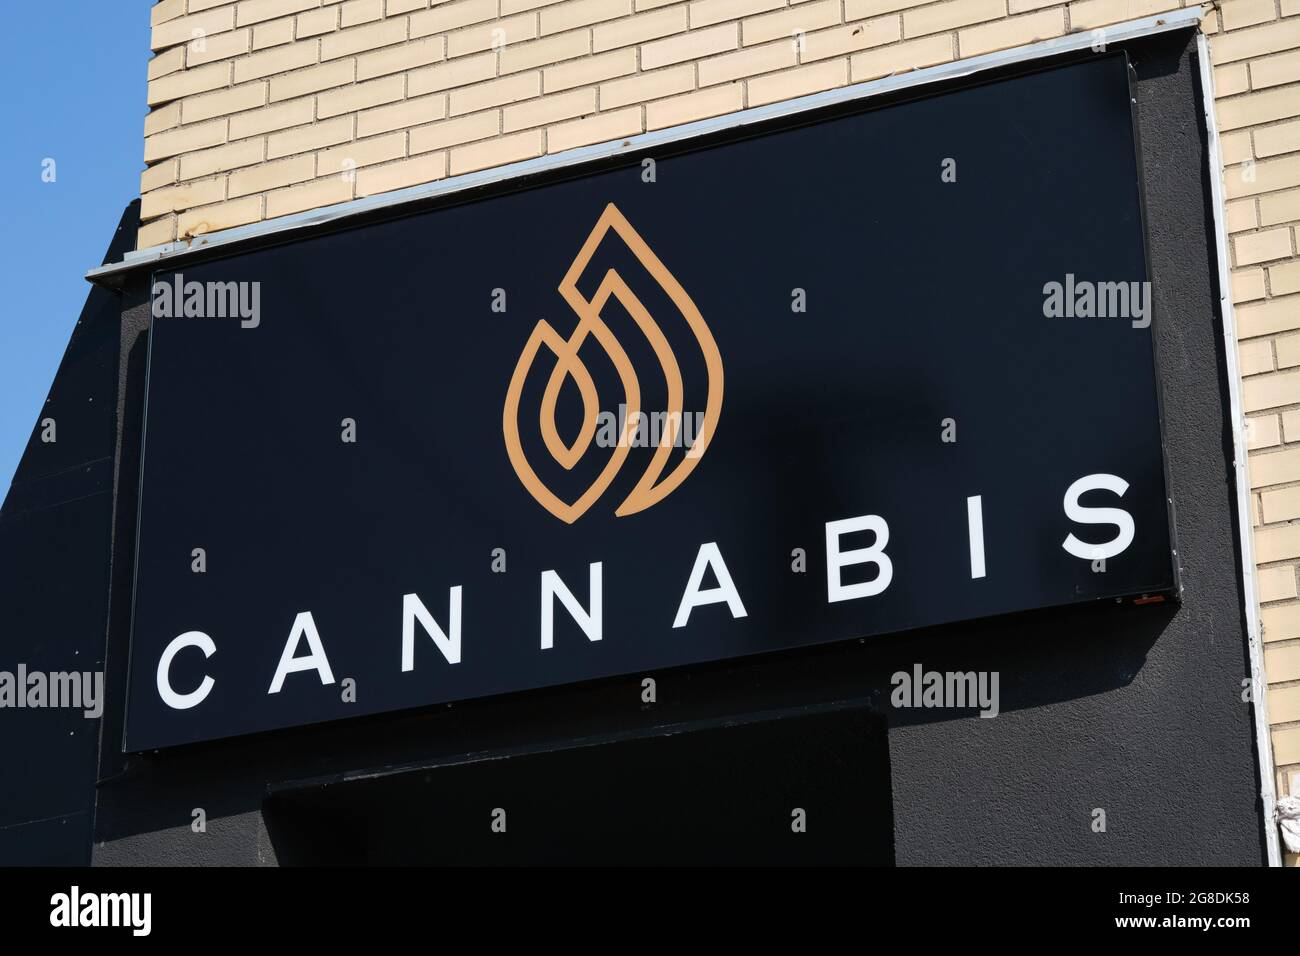 Cannabis dispensary sign above store front, part of expanding network. Ottawa, Canada Stock Photo